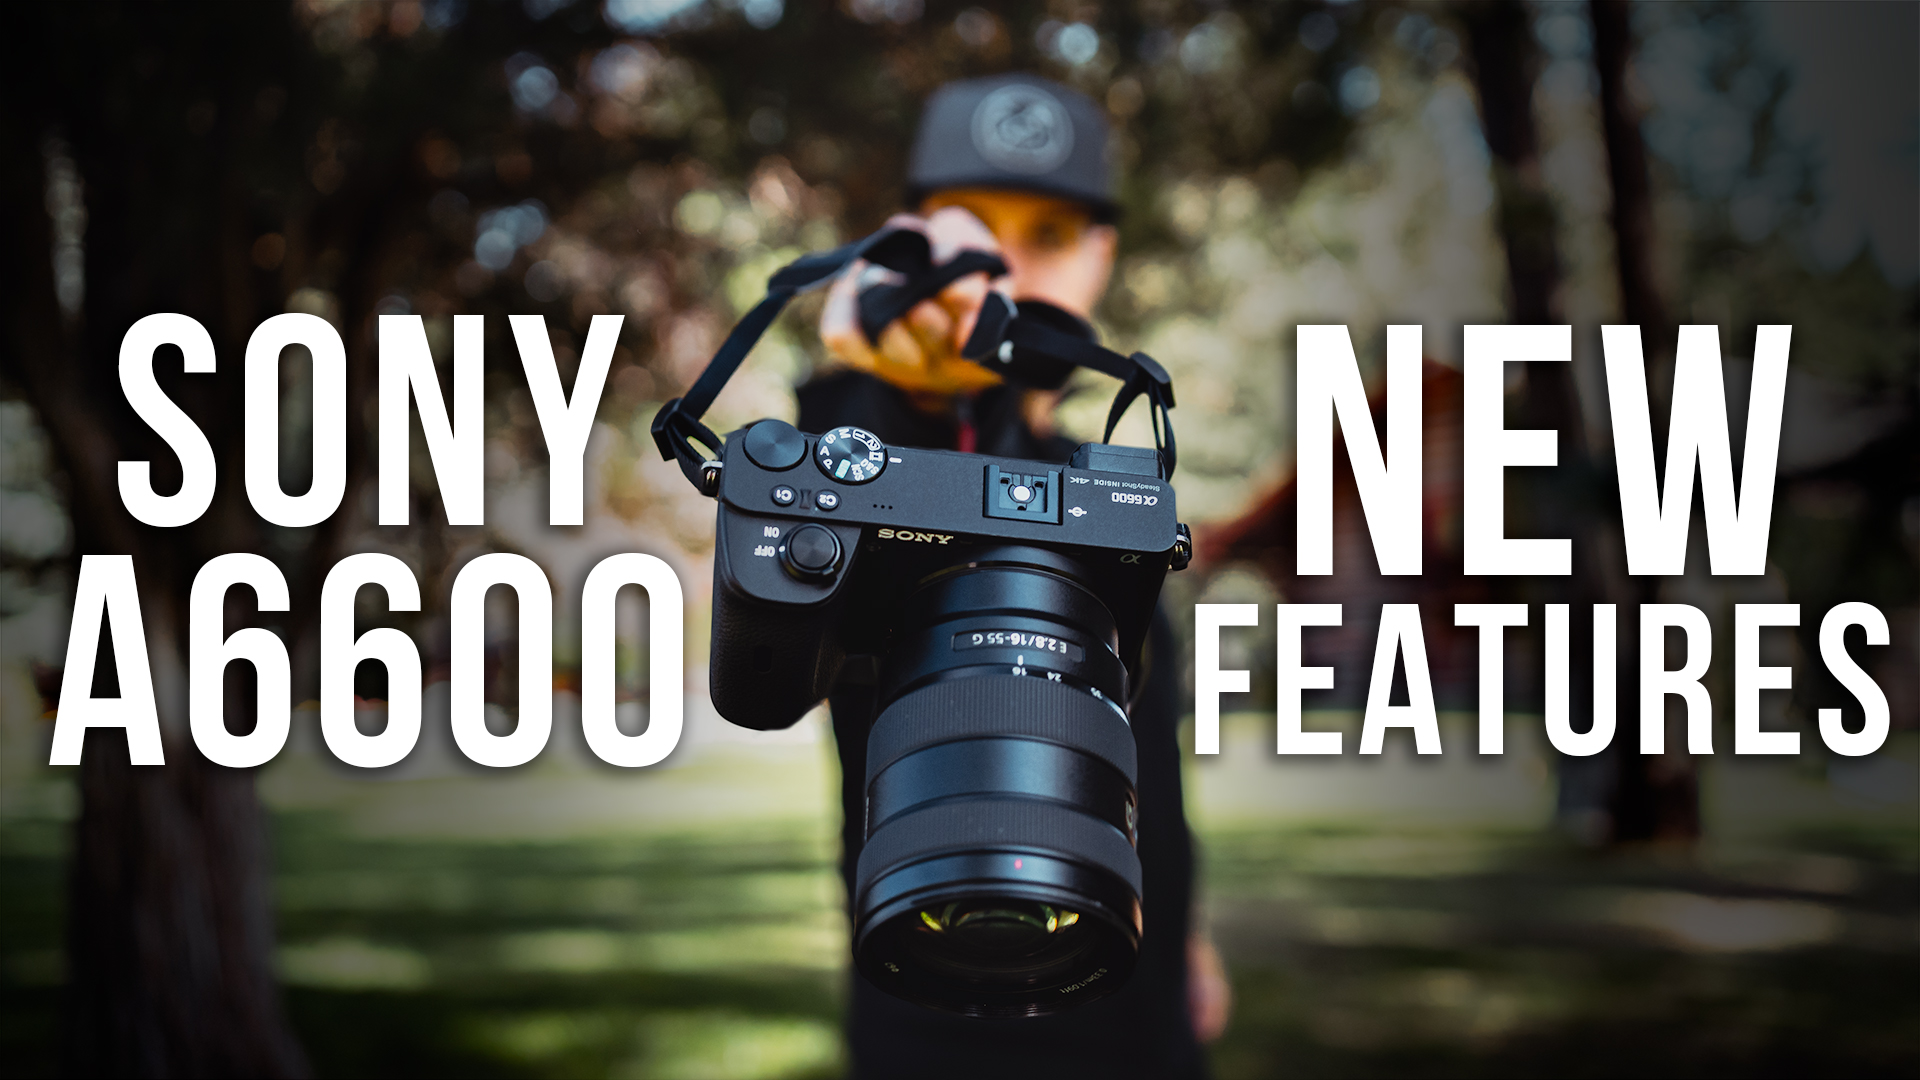 Sony a6600 // 5 NEW FEATURES [vs. a6400 & a6500]